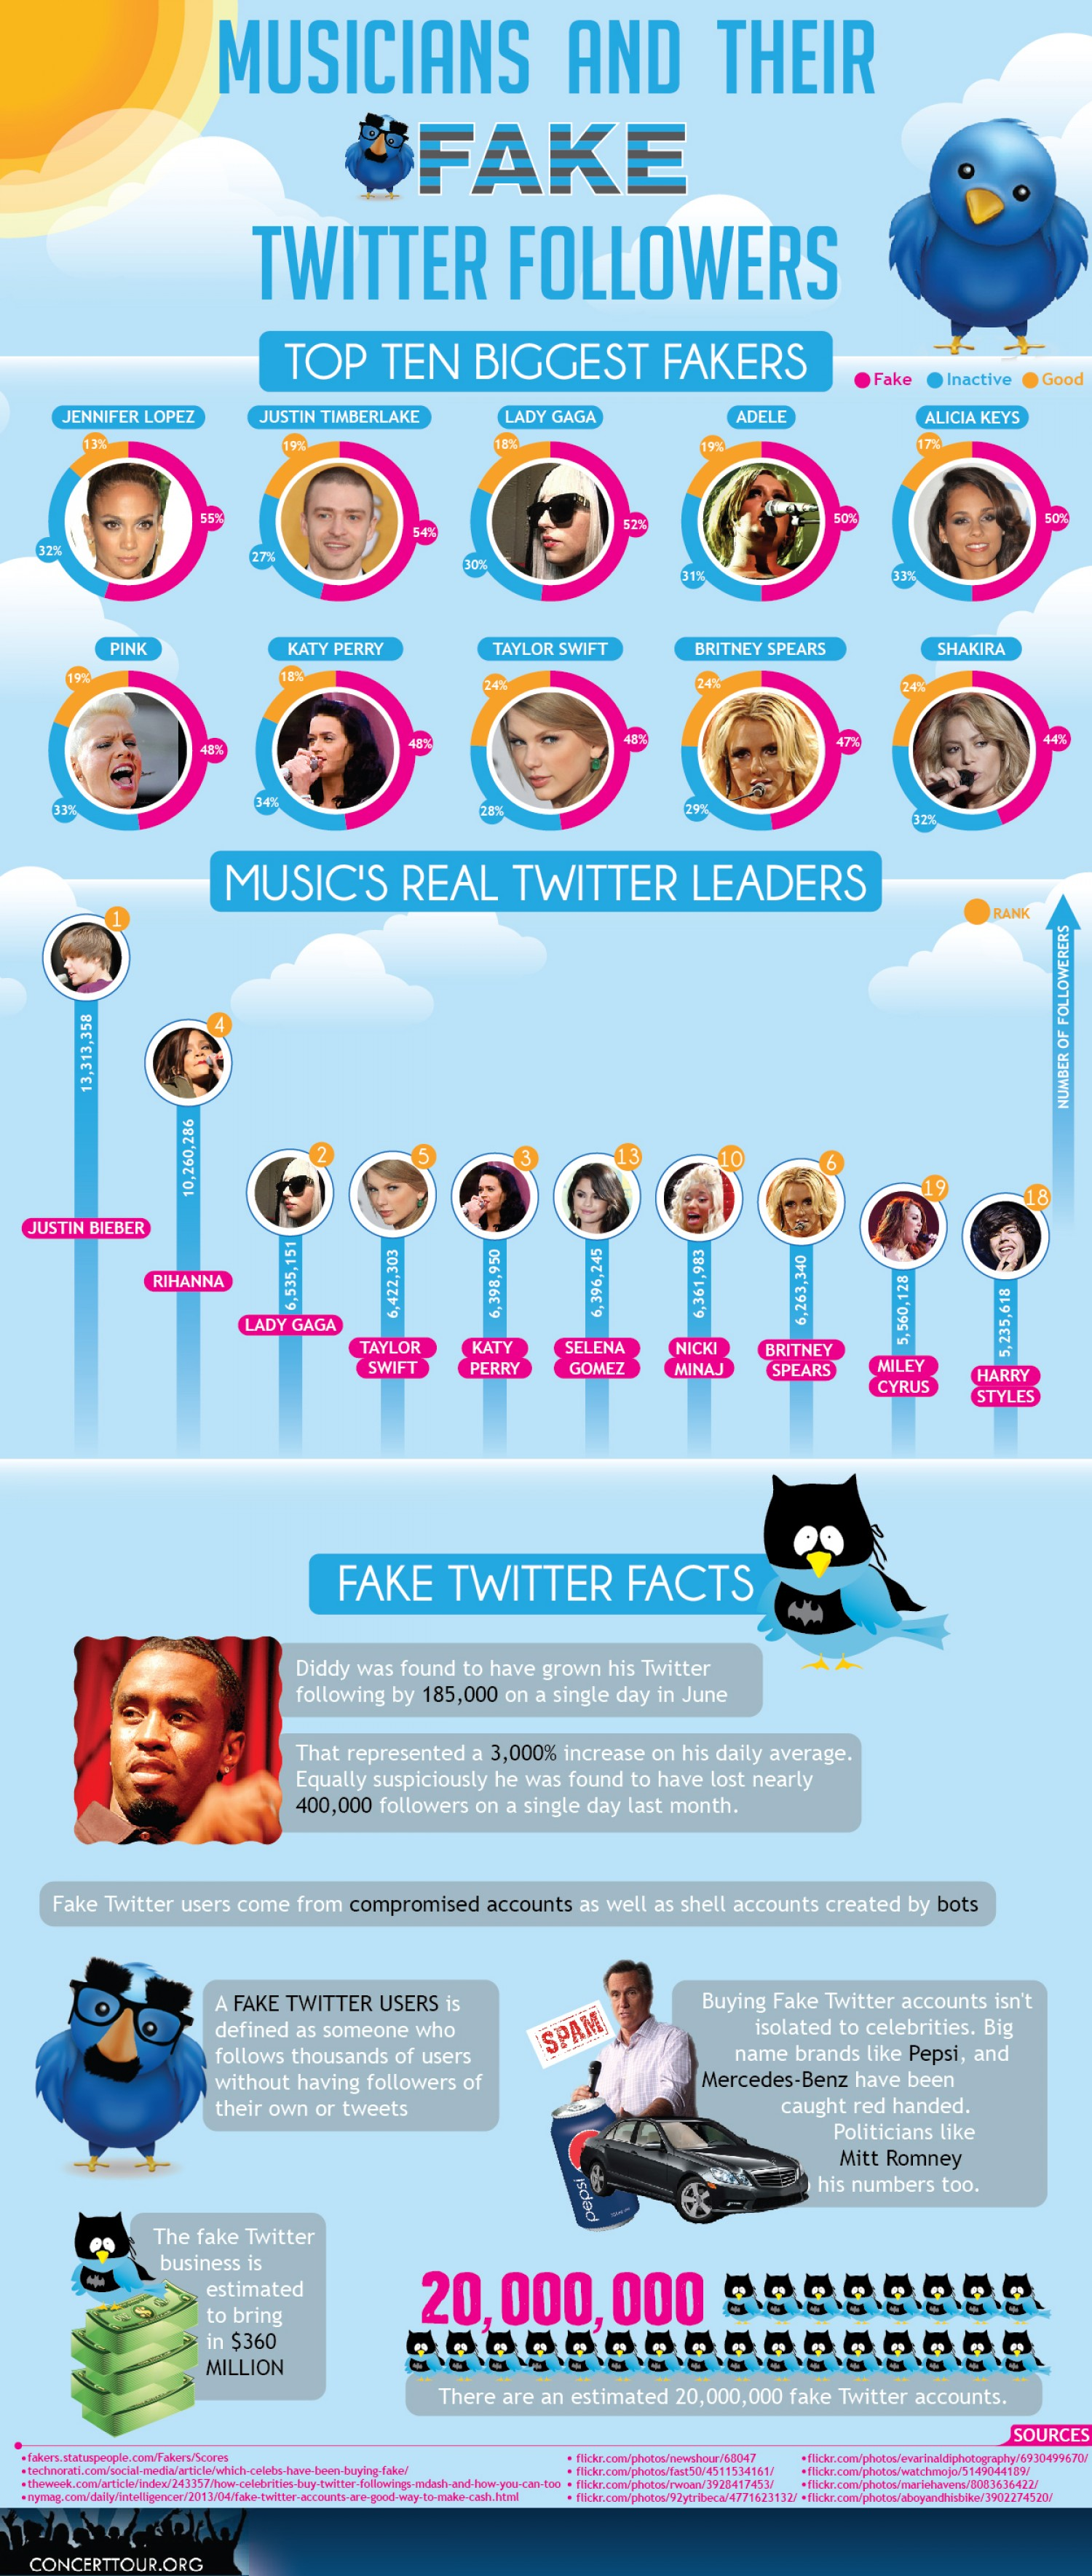 6. Musicians and Their Fake Twitter Followers